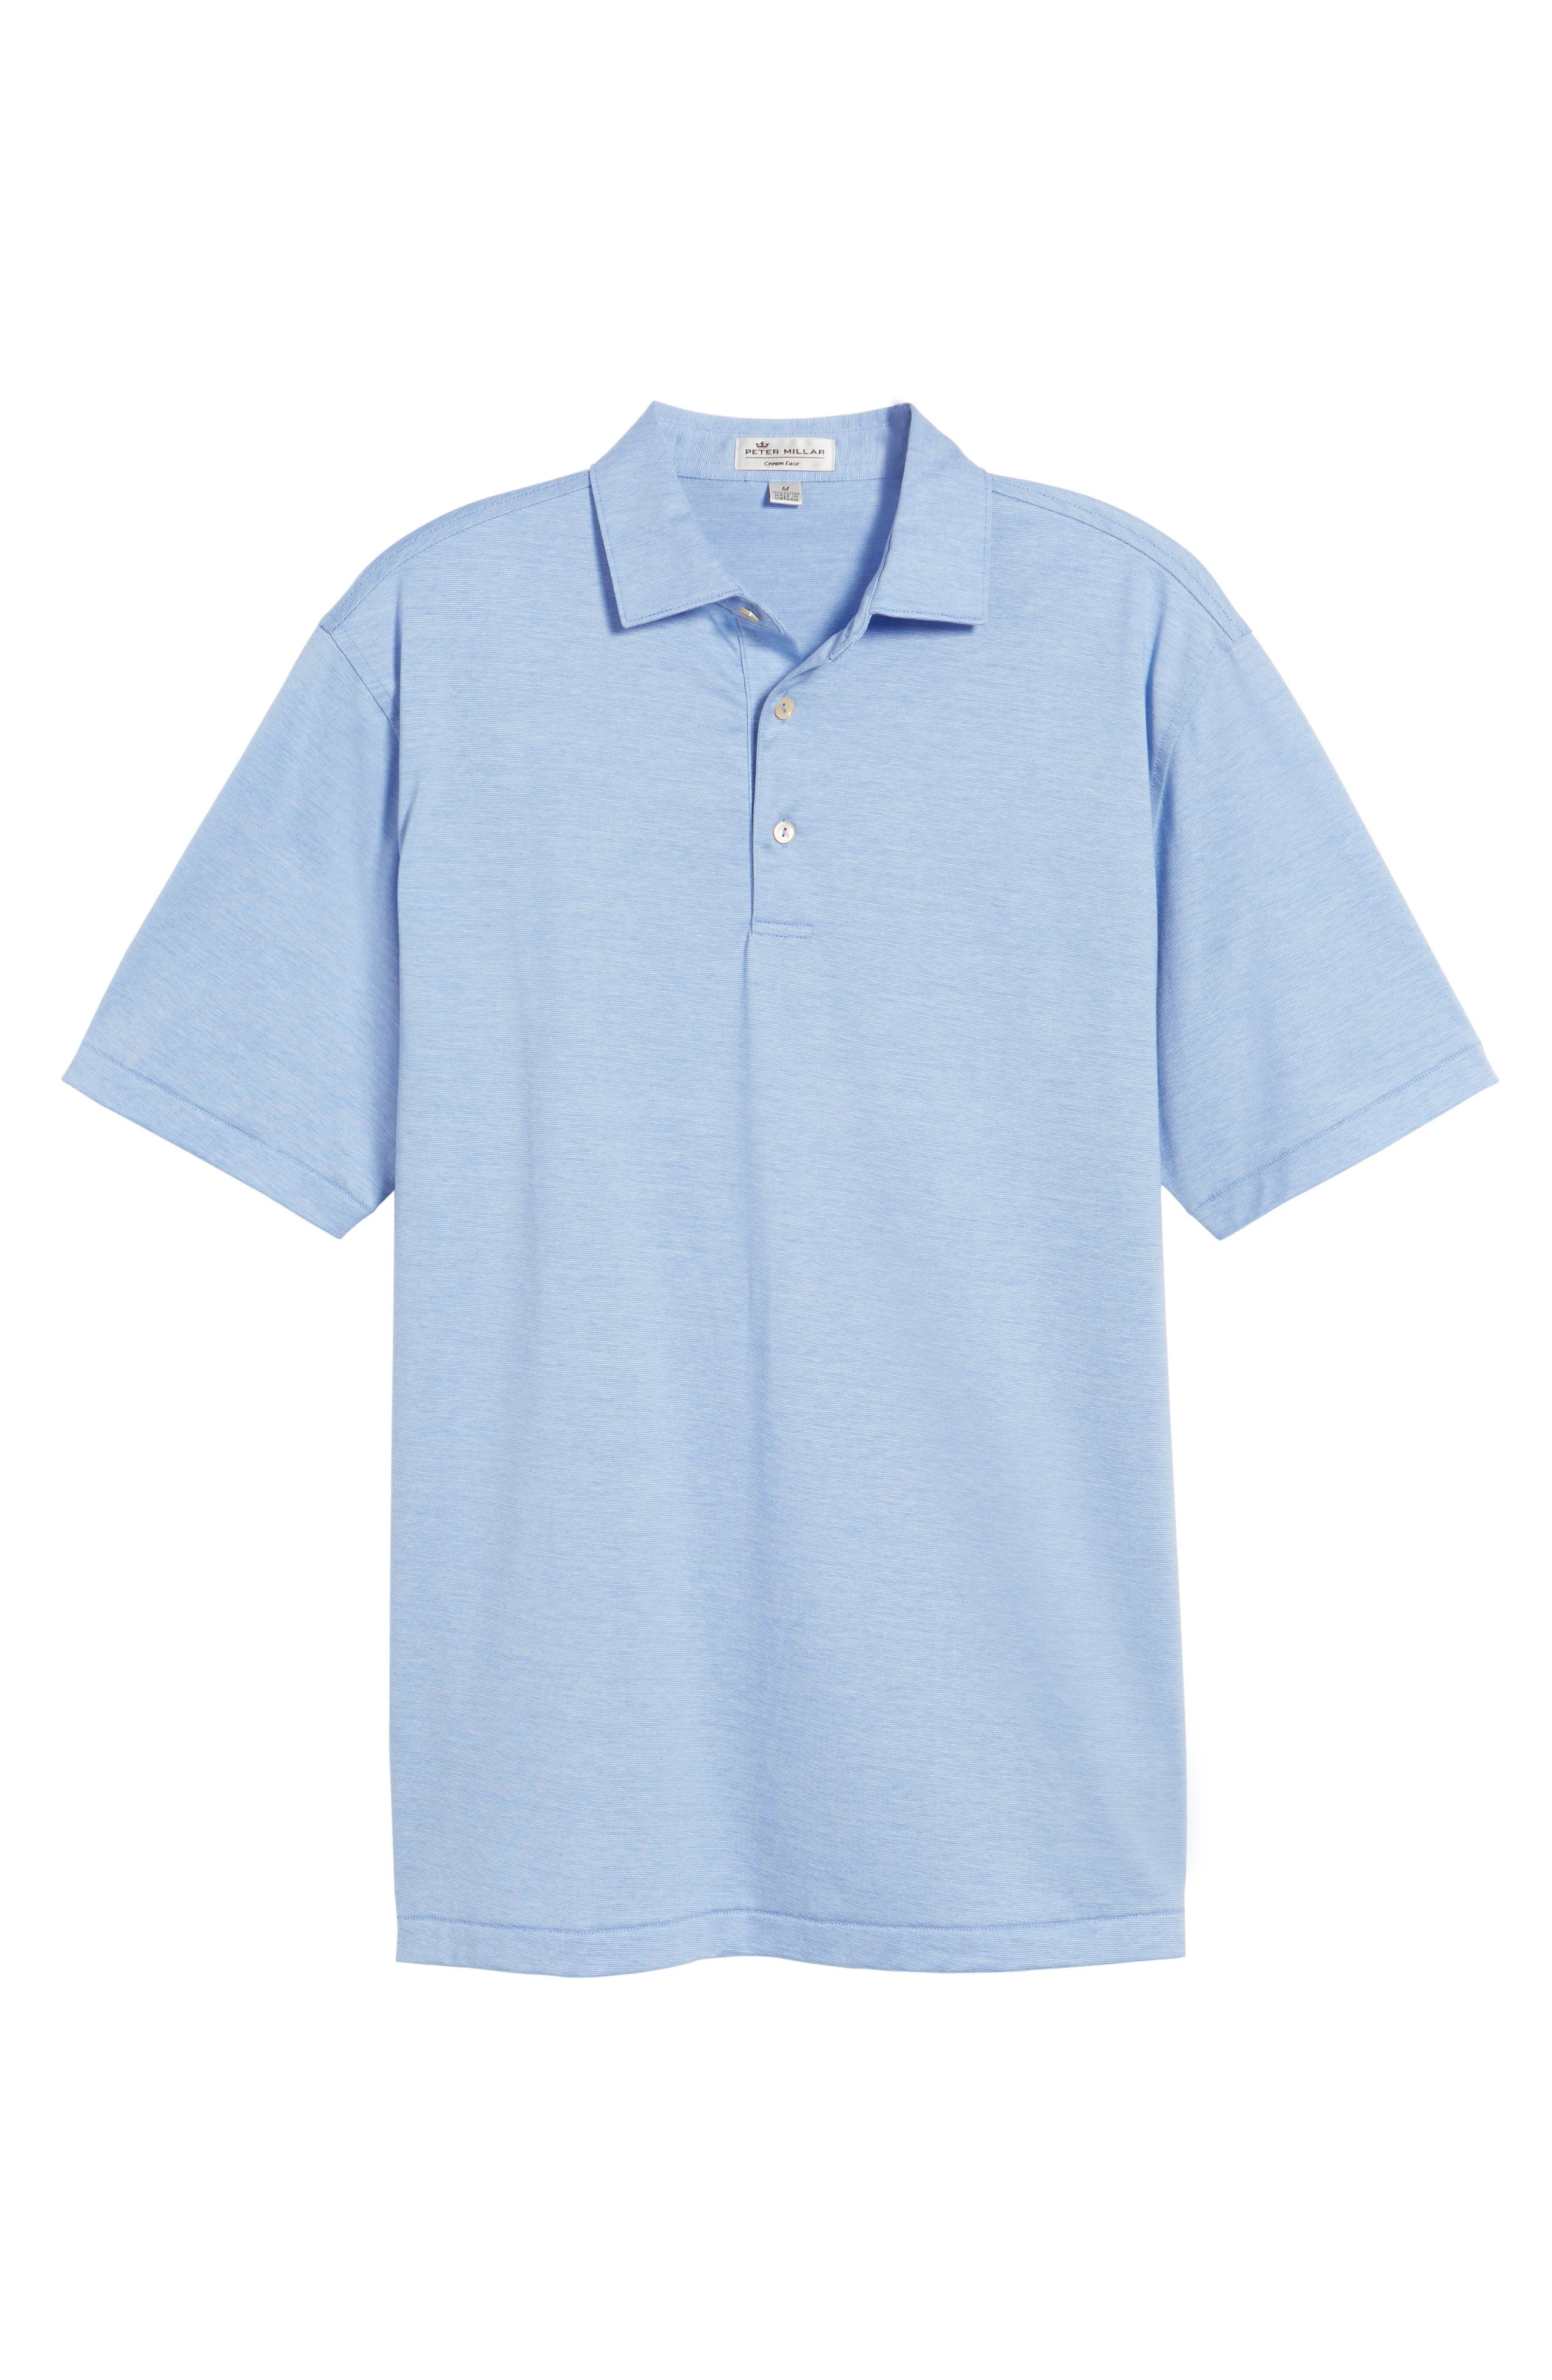 PETER MILLAR,                             Briarwood Stripe Cotton Polo,                             Alternate thumbnail 6, color,                             ATLAS BLUE